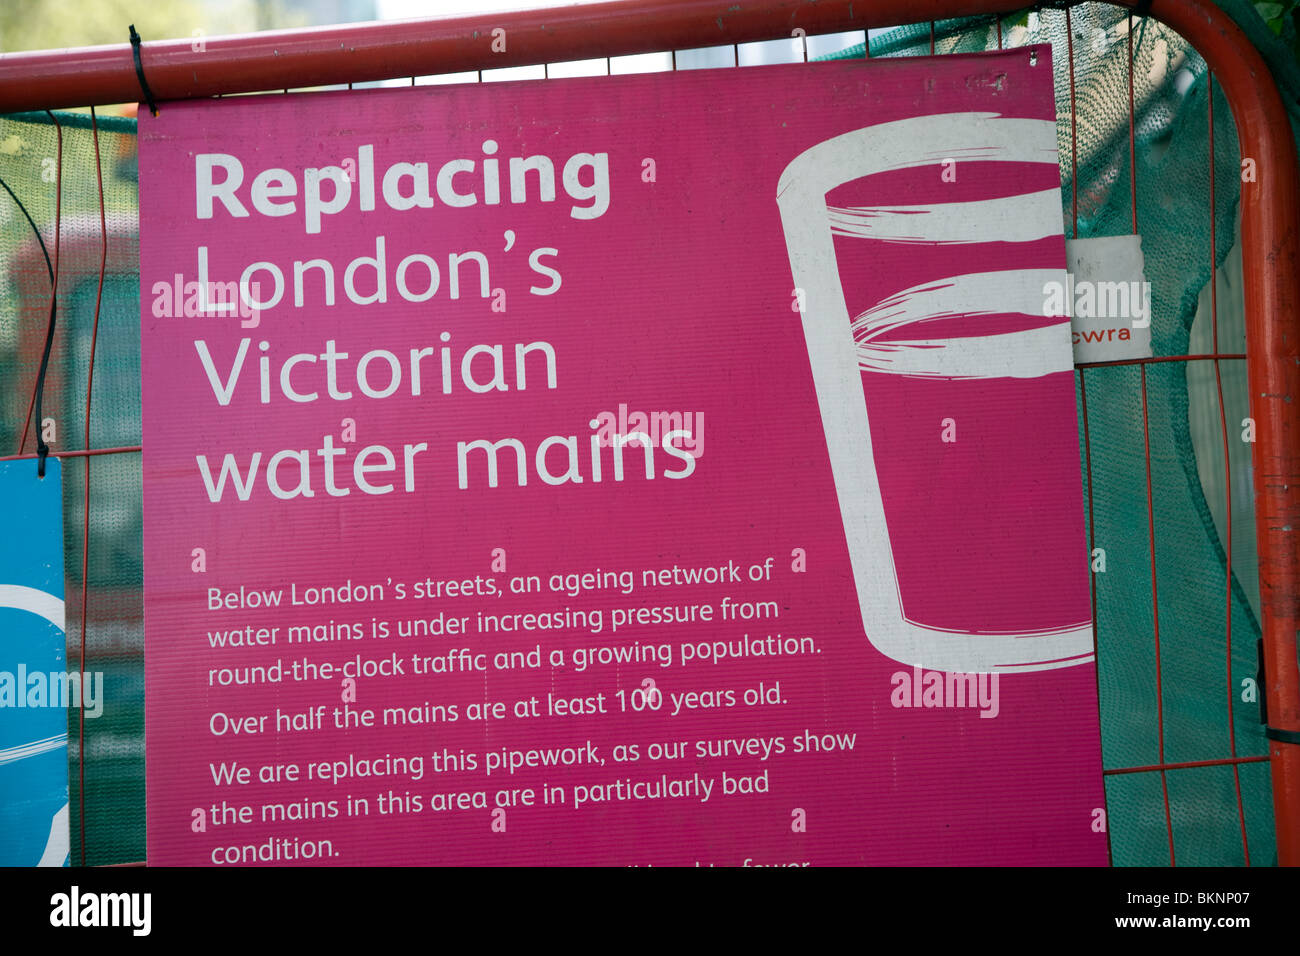 Replacing London's Victorian water mains sign, London, England - Stock Image